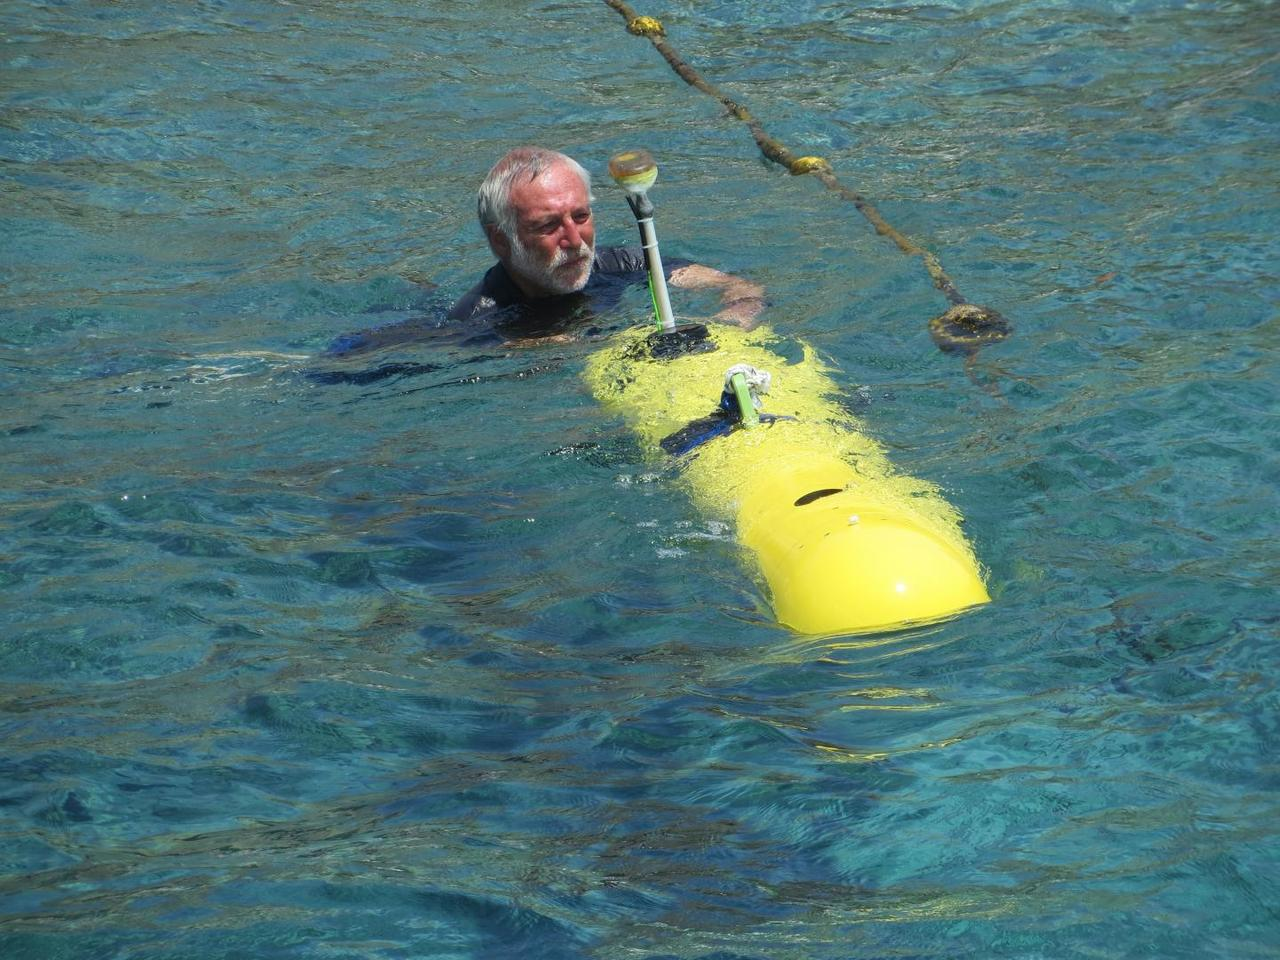 Prof. Hugo Gutermanwith the HydroCamel II in the waters off of Eilat, Israel